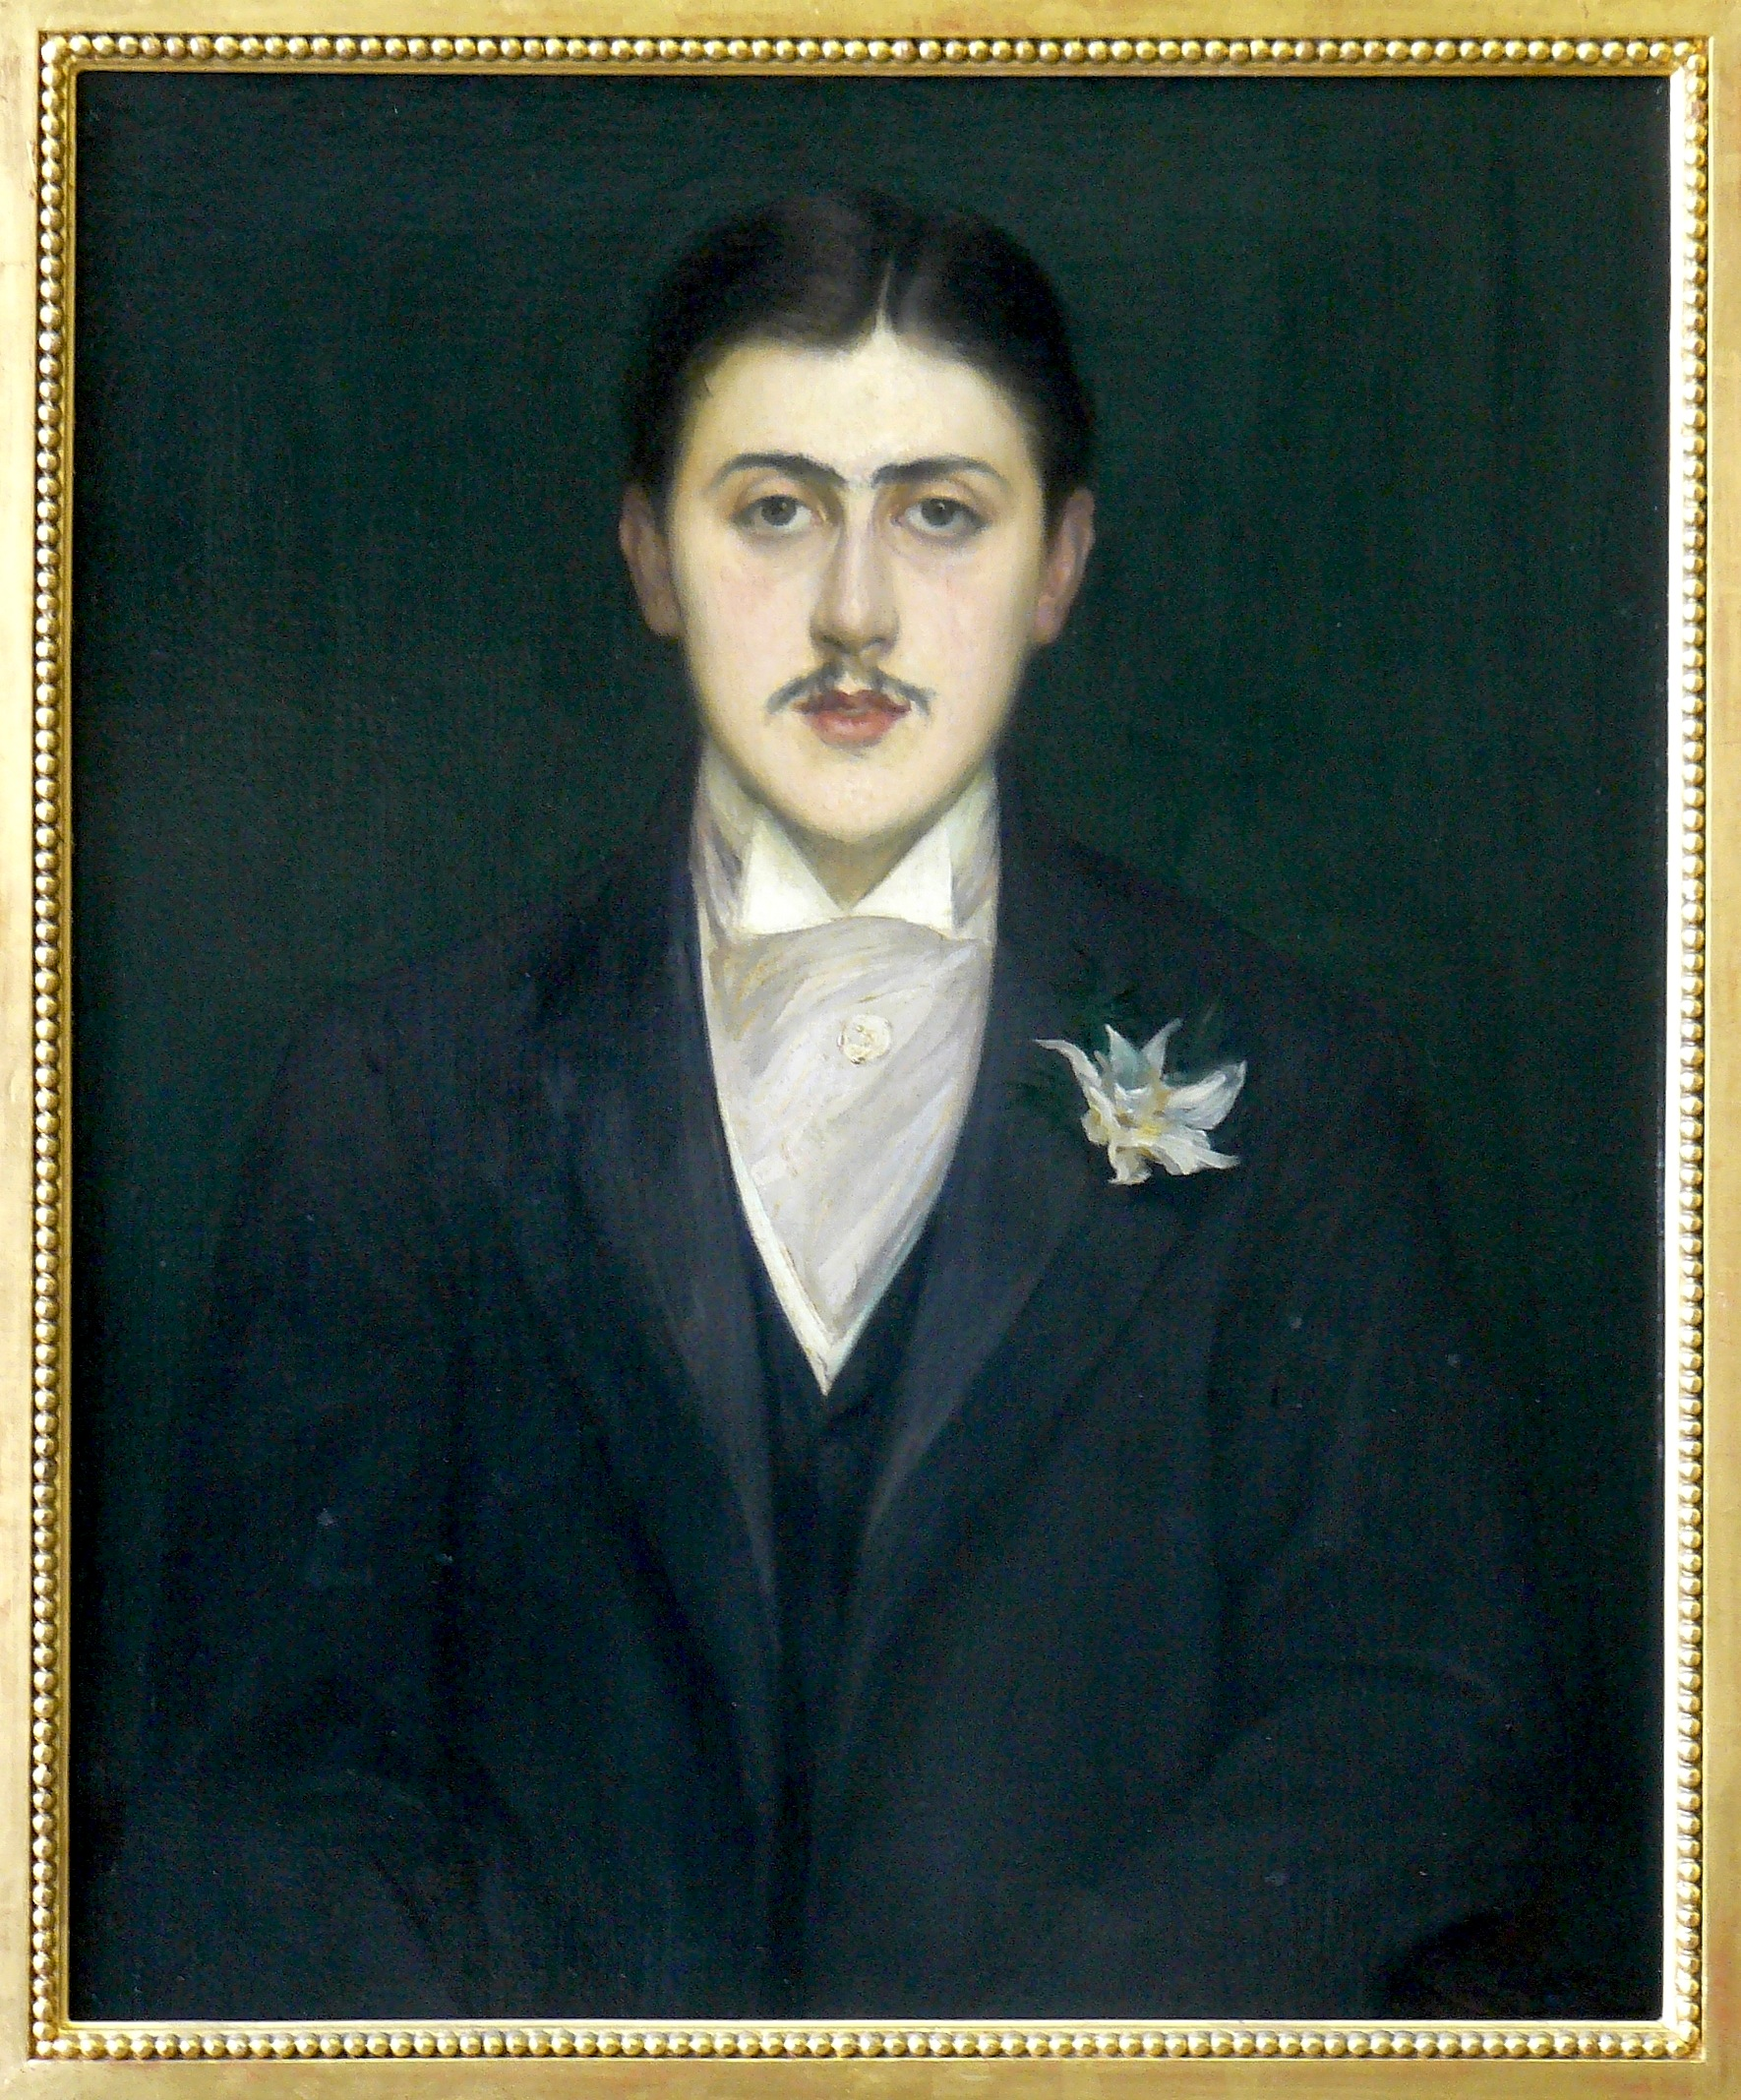 https://upload.wikimedia.org/wikipedia/commons/a/a6/J_E_Blanche_Marcel_Proust_01-01-2013.jpg